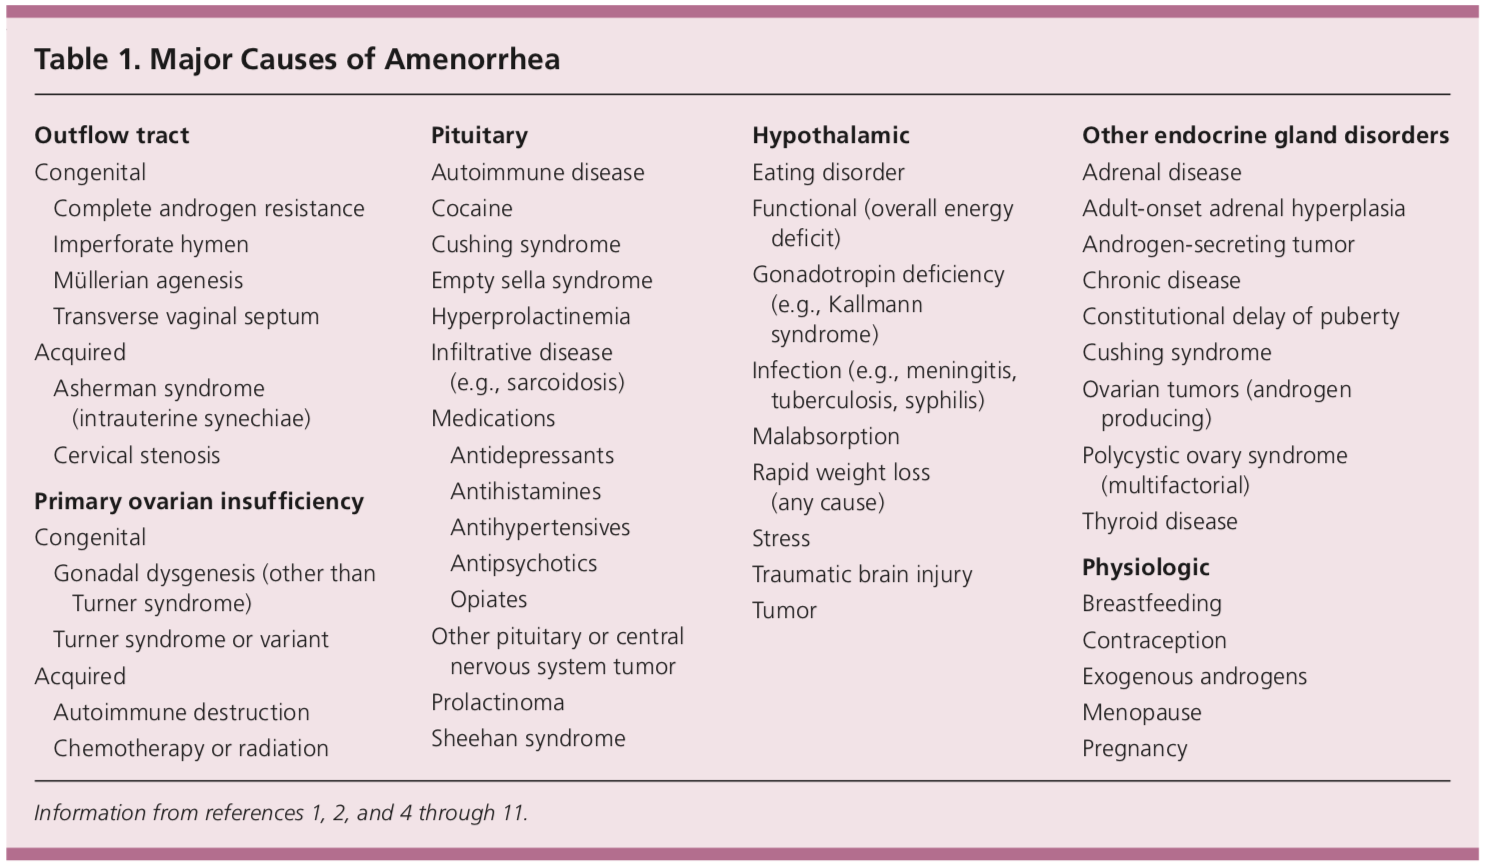 Major Causes of Amenorrhea